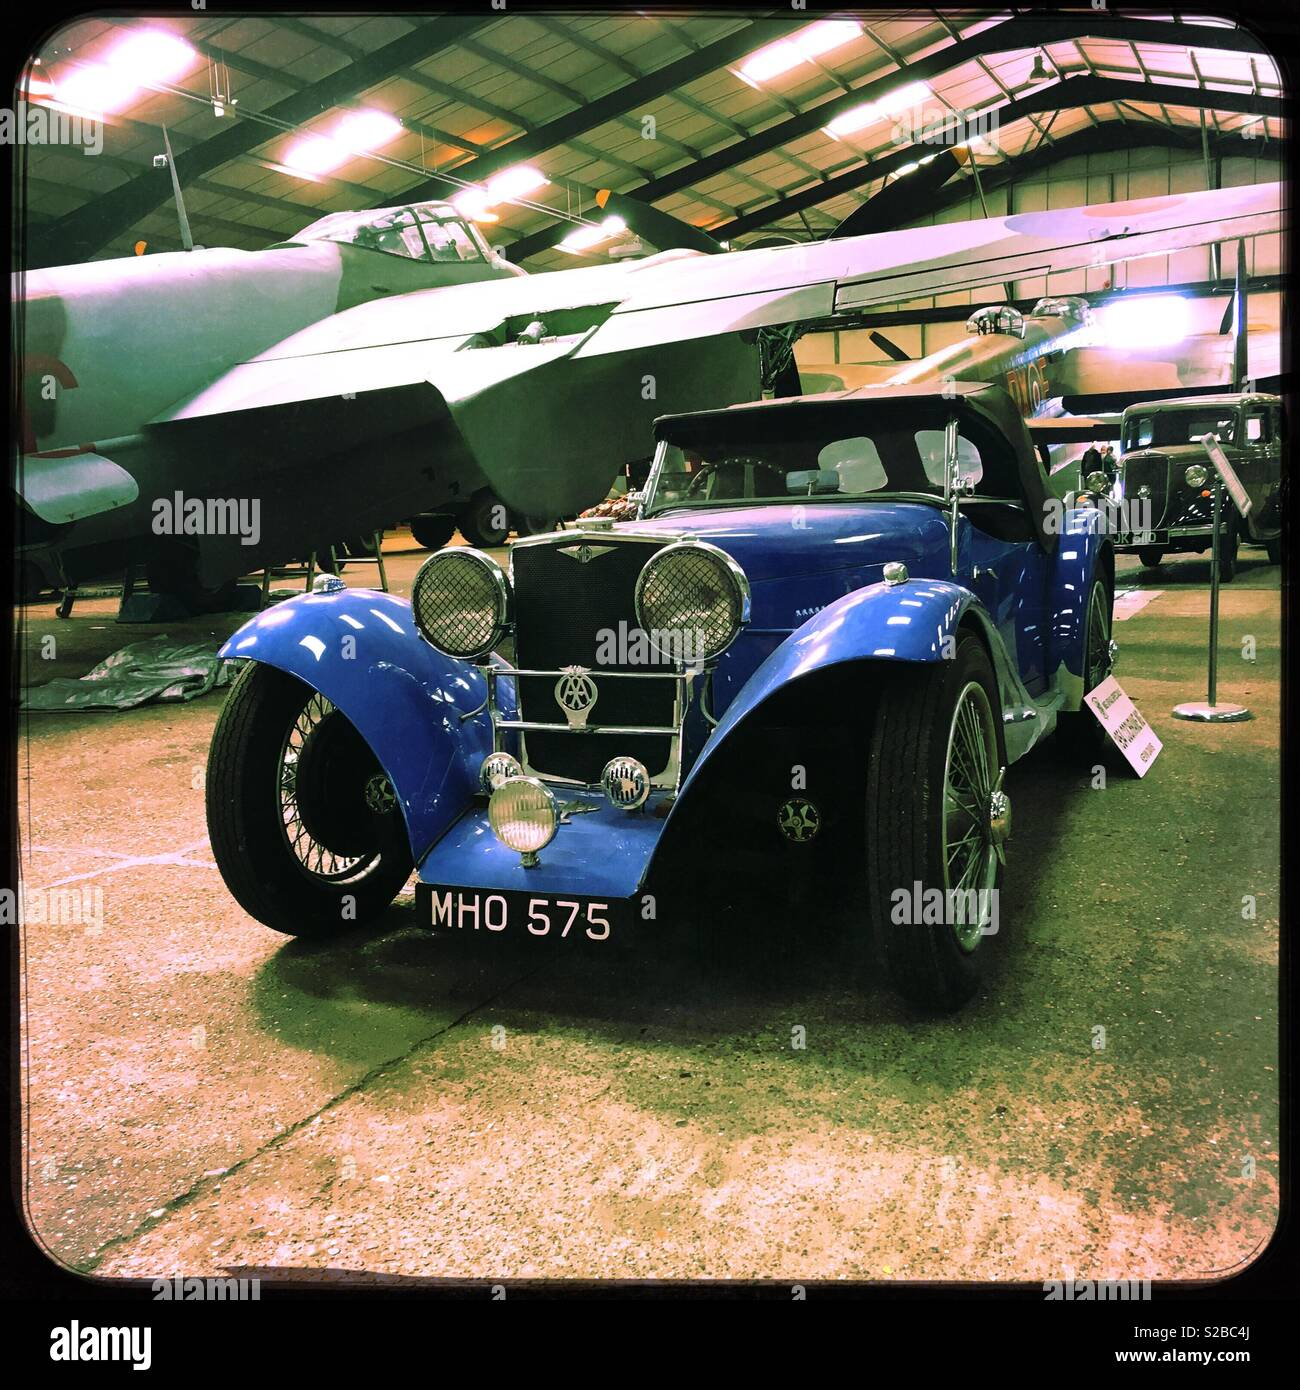 A 1954 MG TA Cochrane Special displayed next to a de Havilland Mosquito NFII aircraft. Lincolnshire Aviation Heritage Centre, East Kirkby, Lincolnshire, UK. - Stock Image